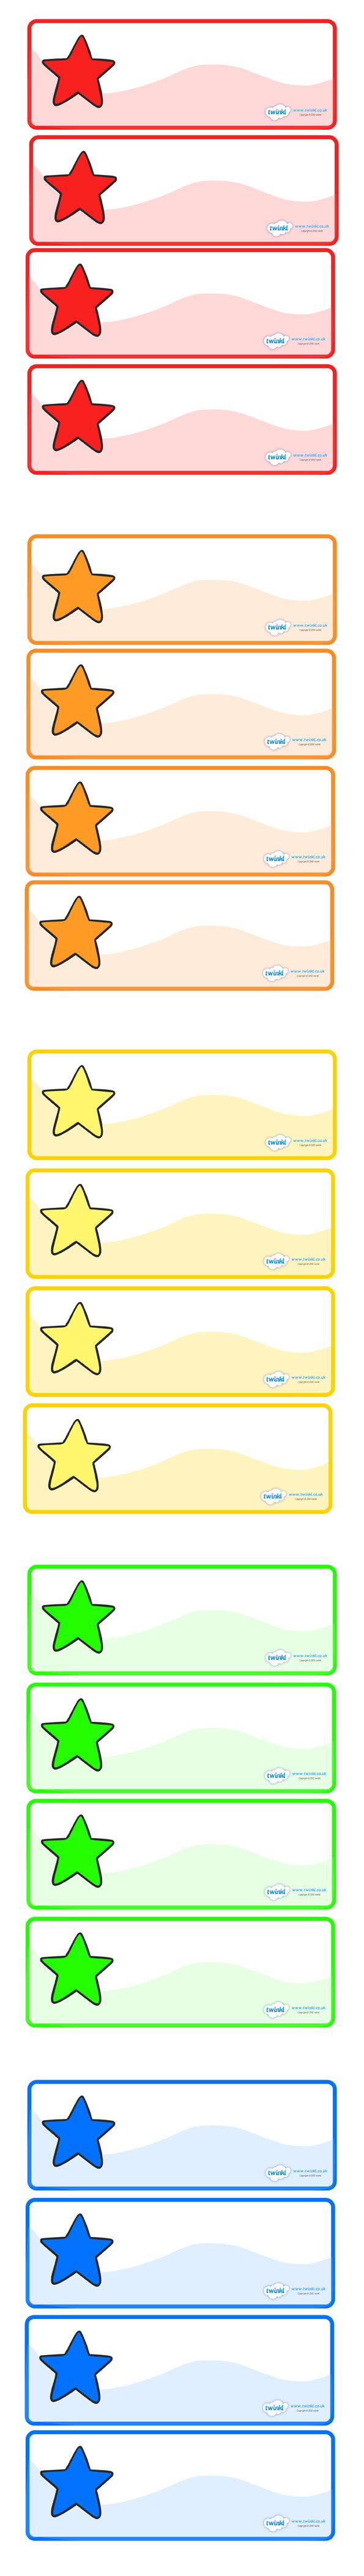 Twinkl Resources >> Editable Multicoloured Stars Drawer, Peg, Name Labels  >> Thousands of printable primary teaching resources for EYFS, KS1, KS2 and beyond! editable name labels, label templates, star, star resources, name labels, editable labels, coat peg labels, KS1, foundation labels, teaching,